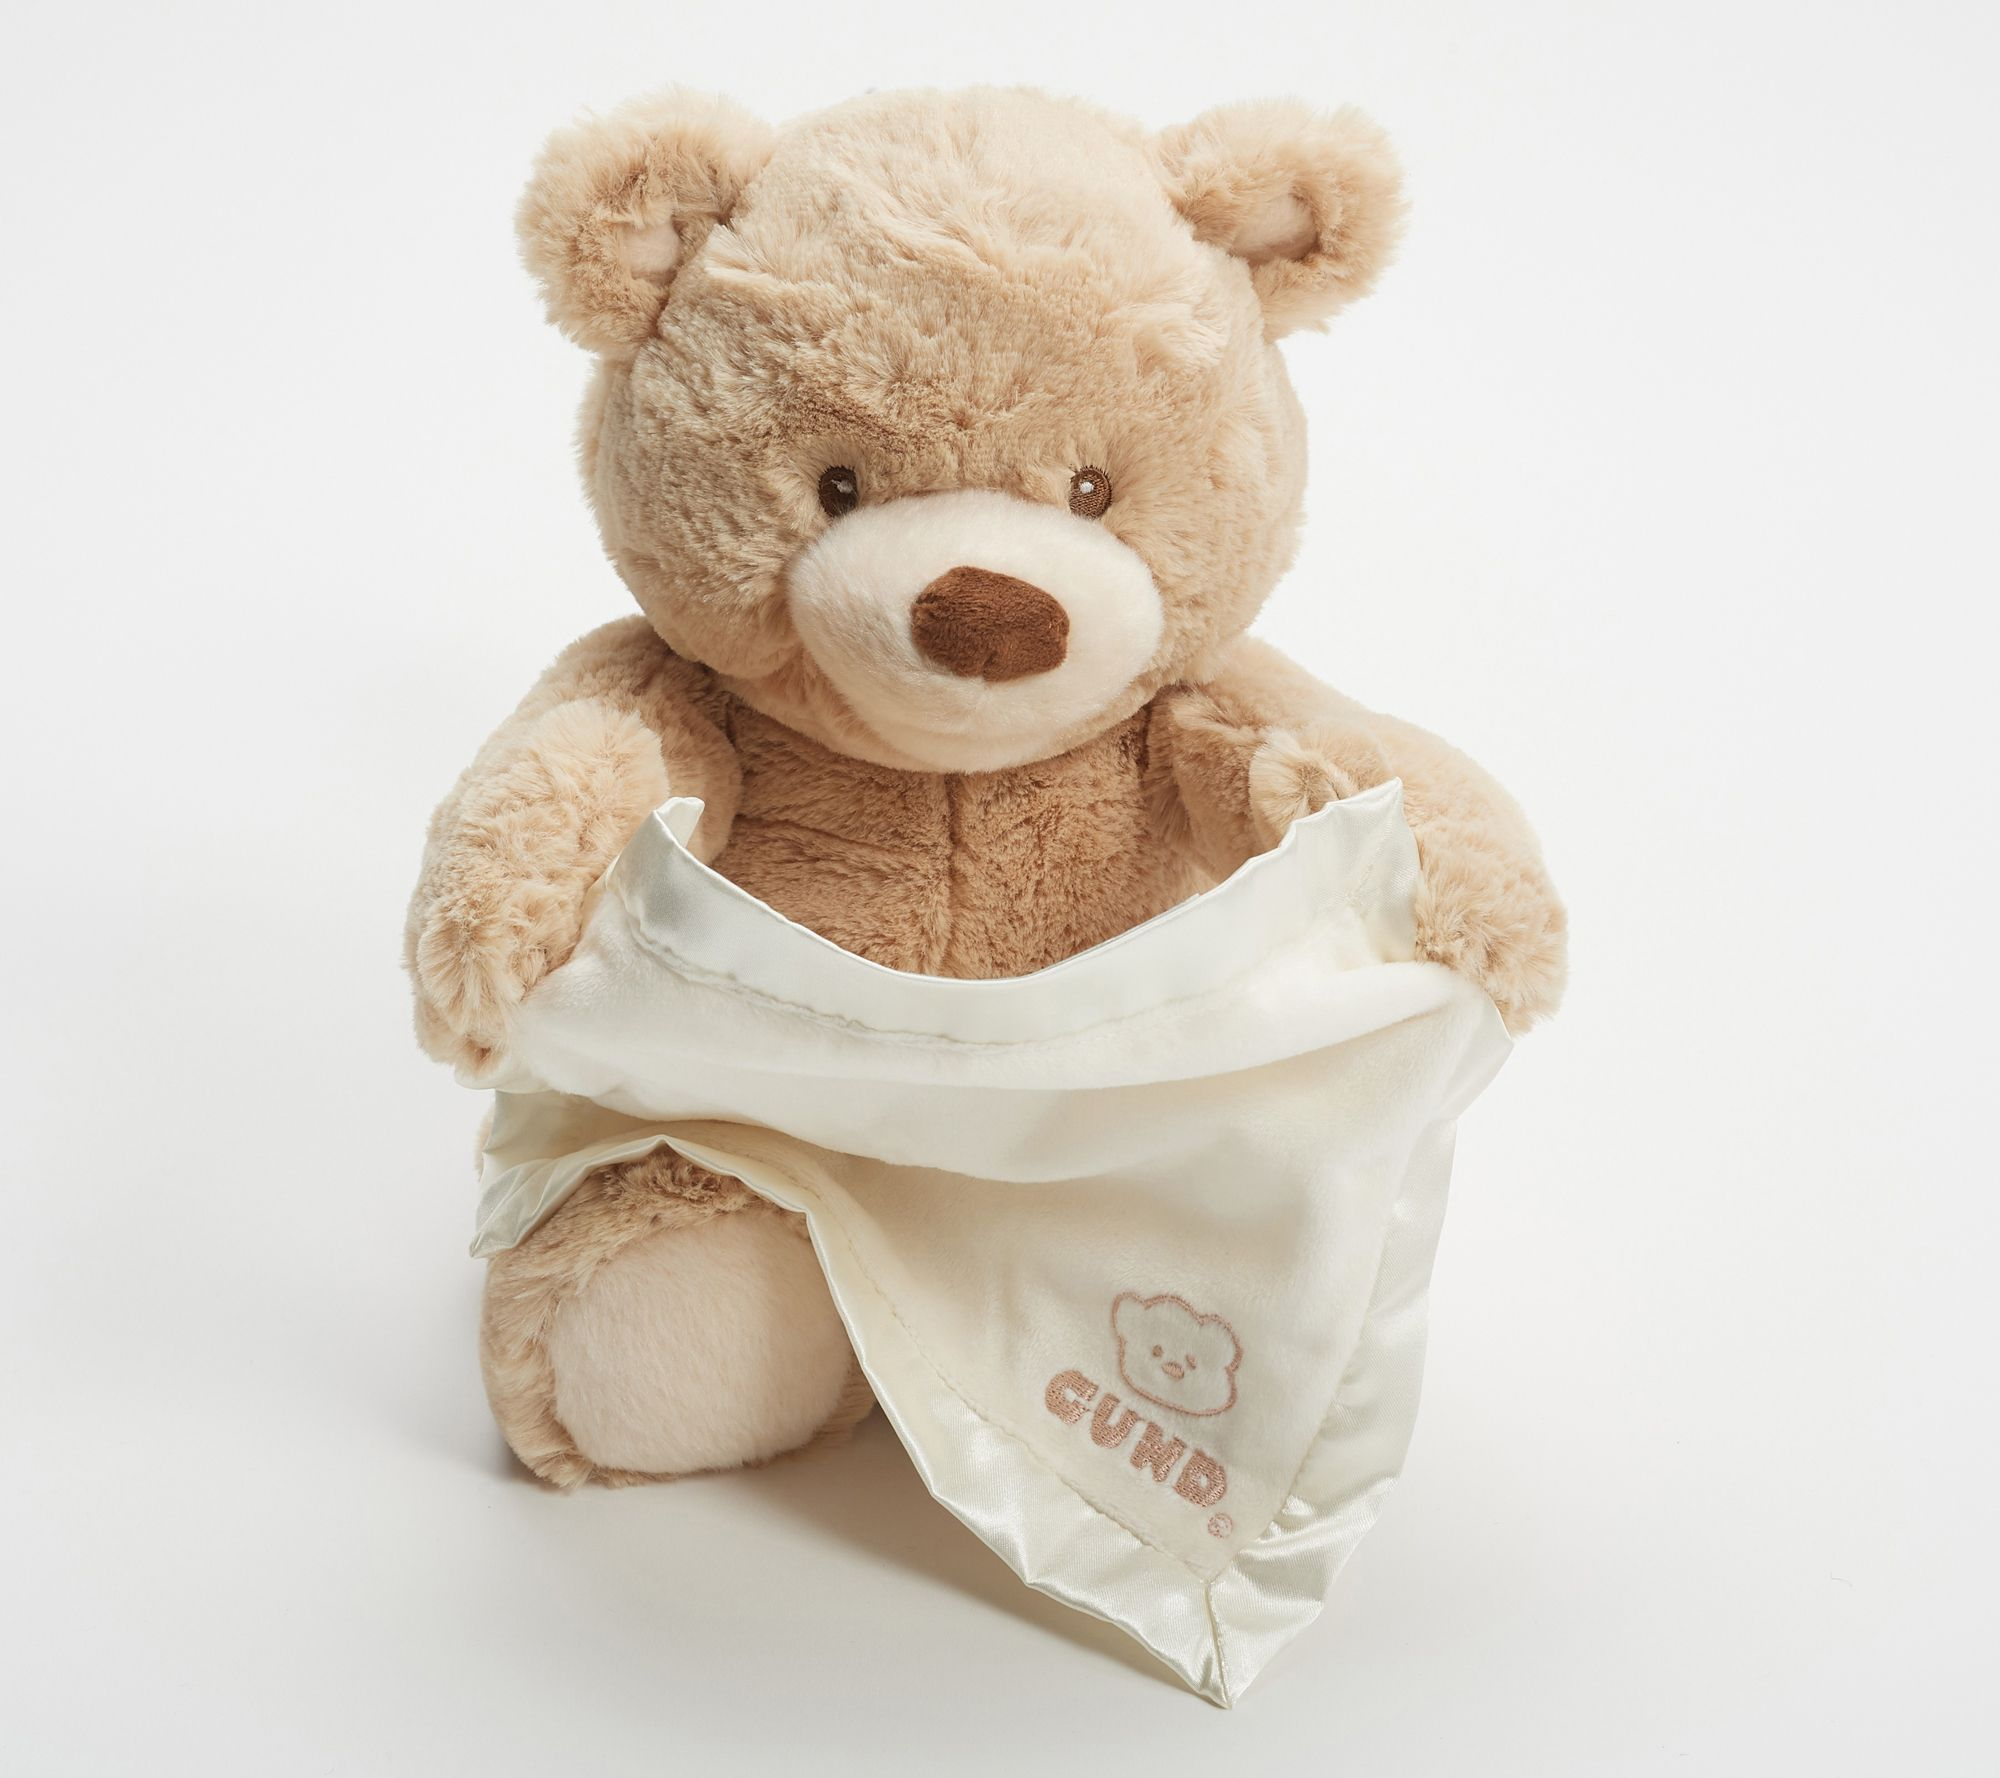 Animated Peek A Boo Bear By Gund Page 1 Qvc Com